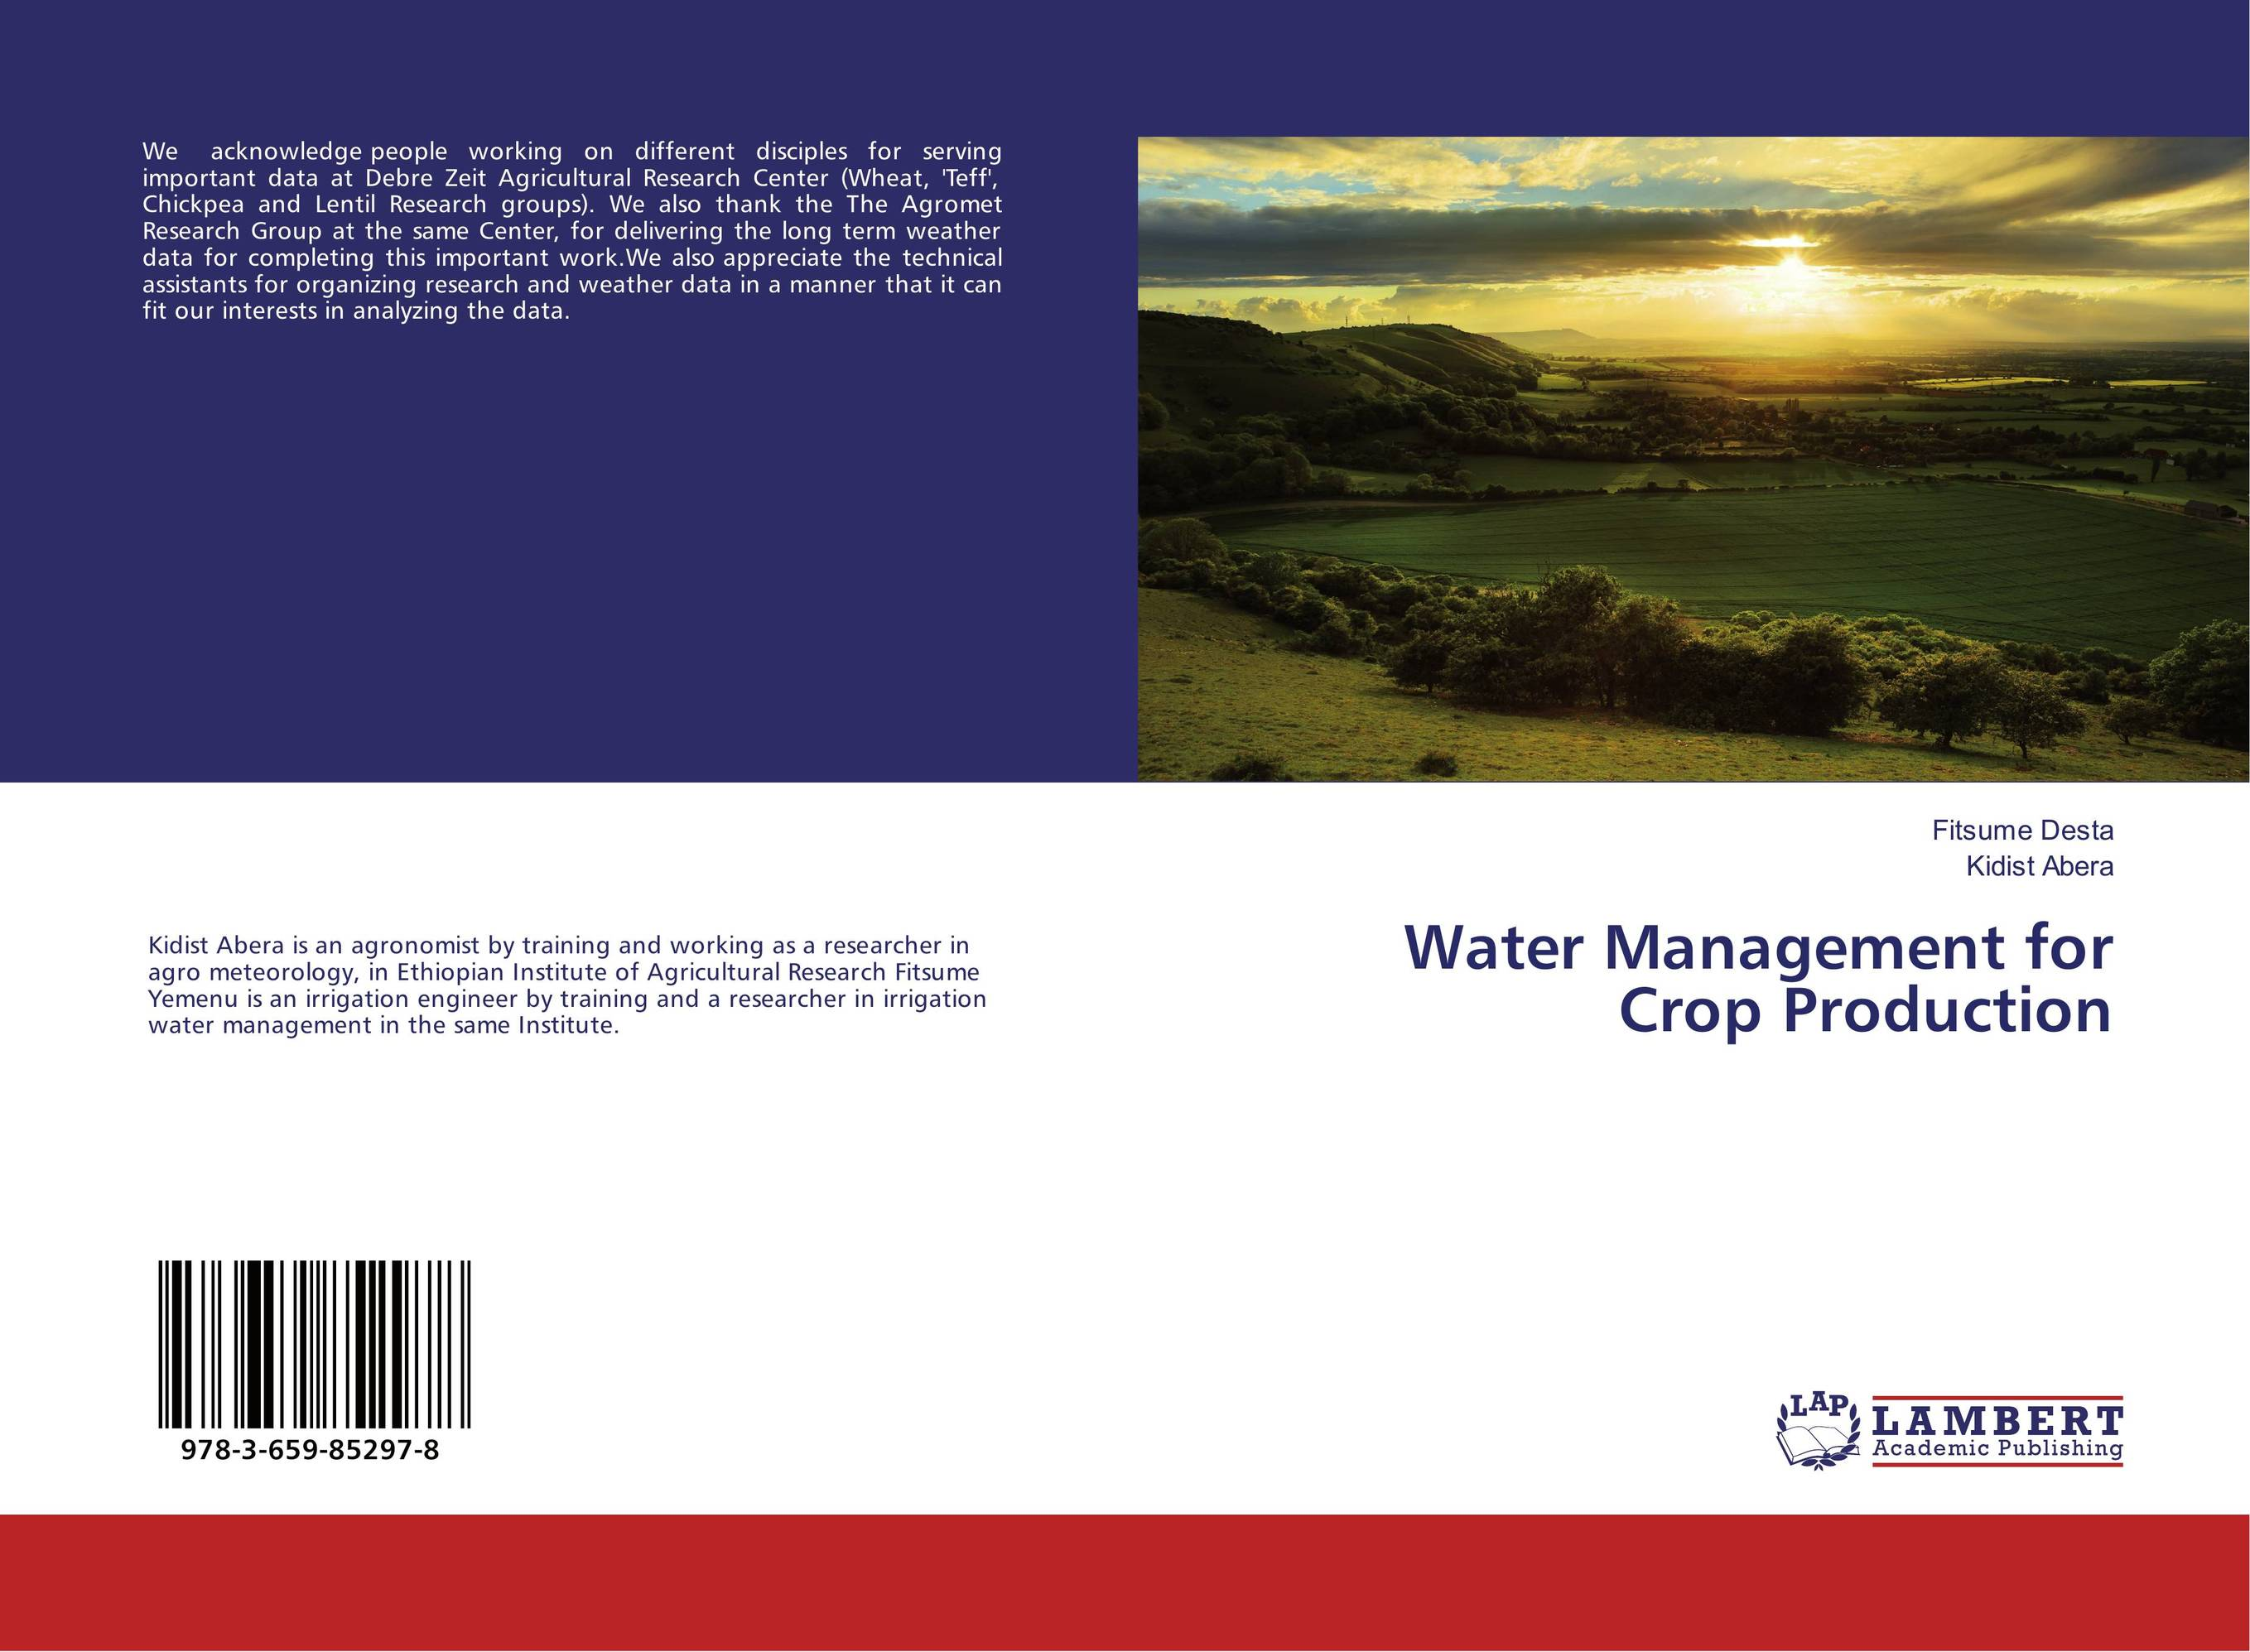 Water Management for Crop Production